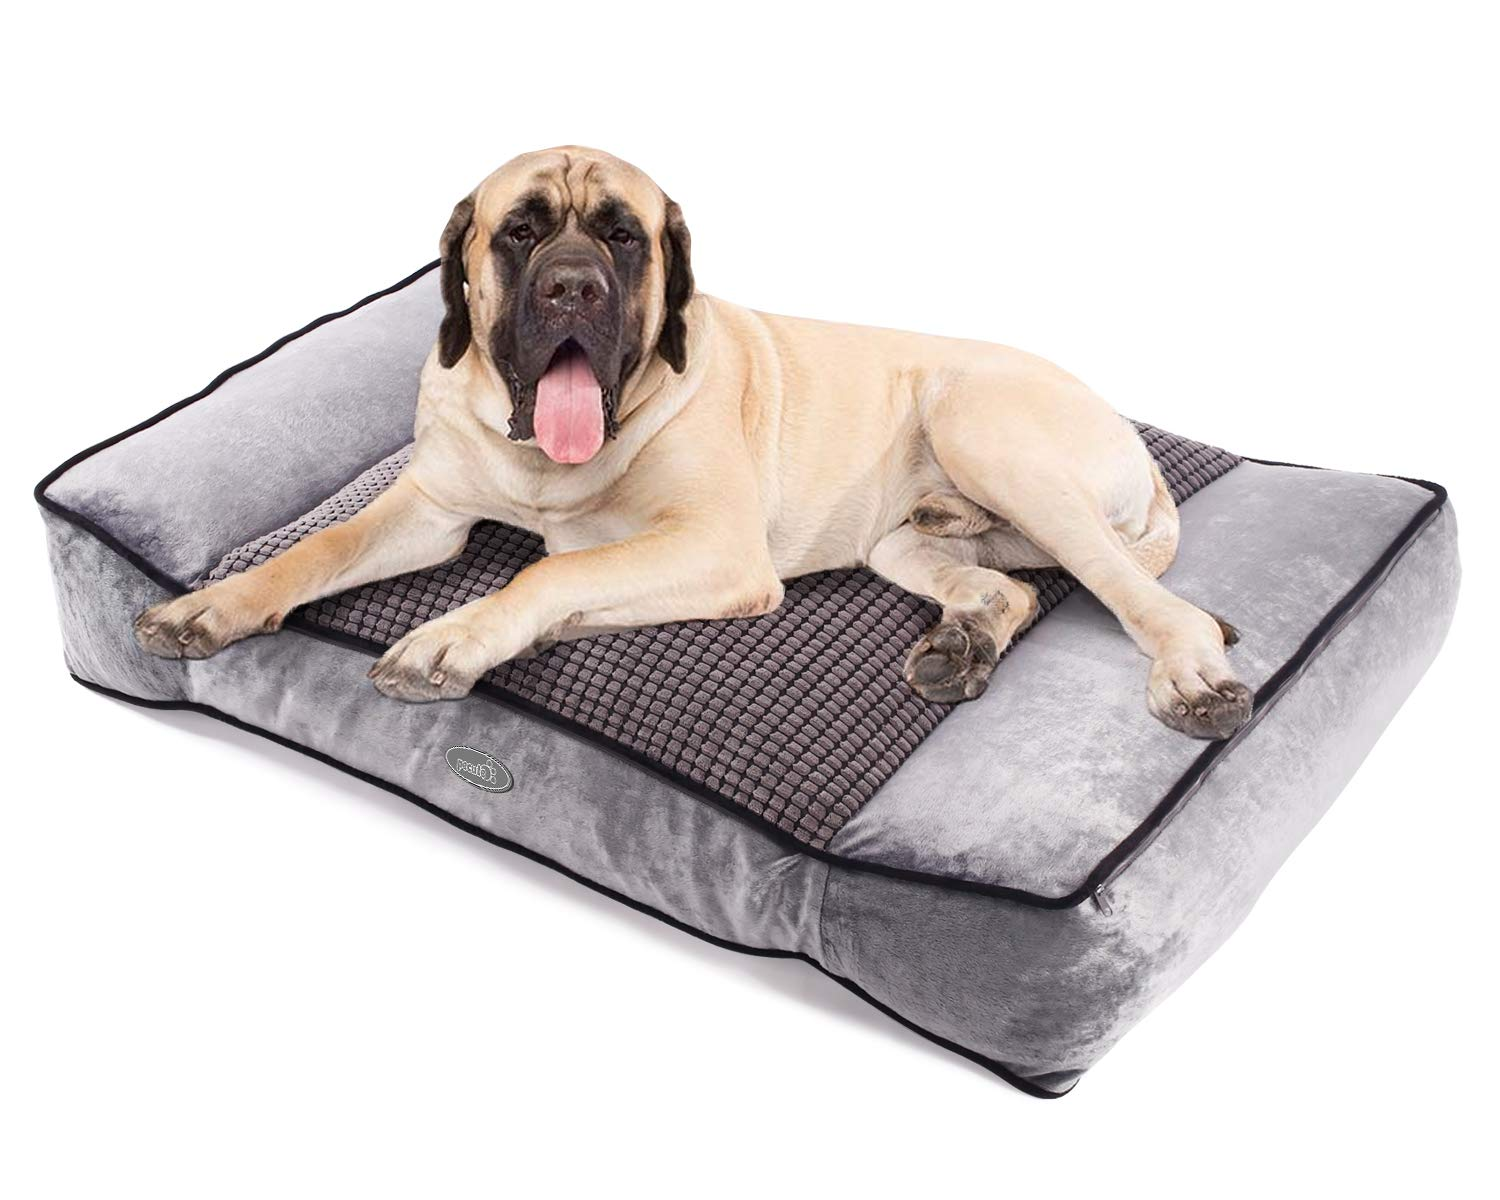 Excellent memory foam bed for dogs.